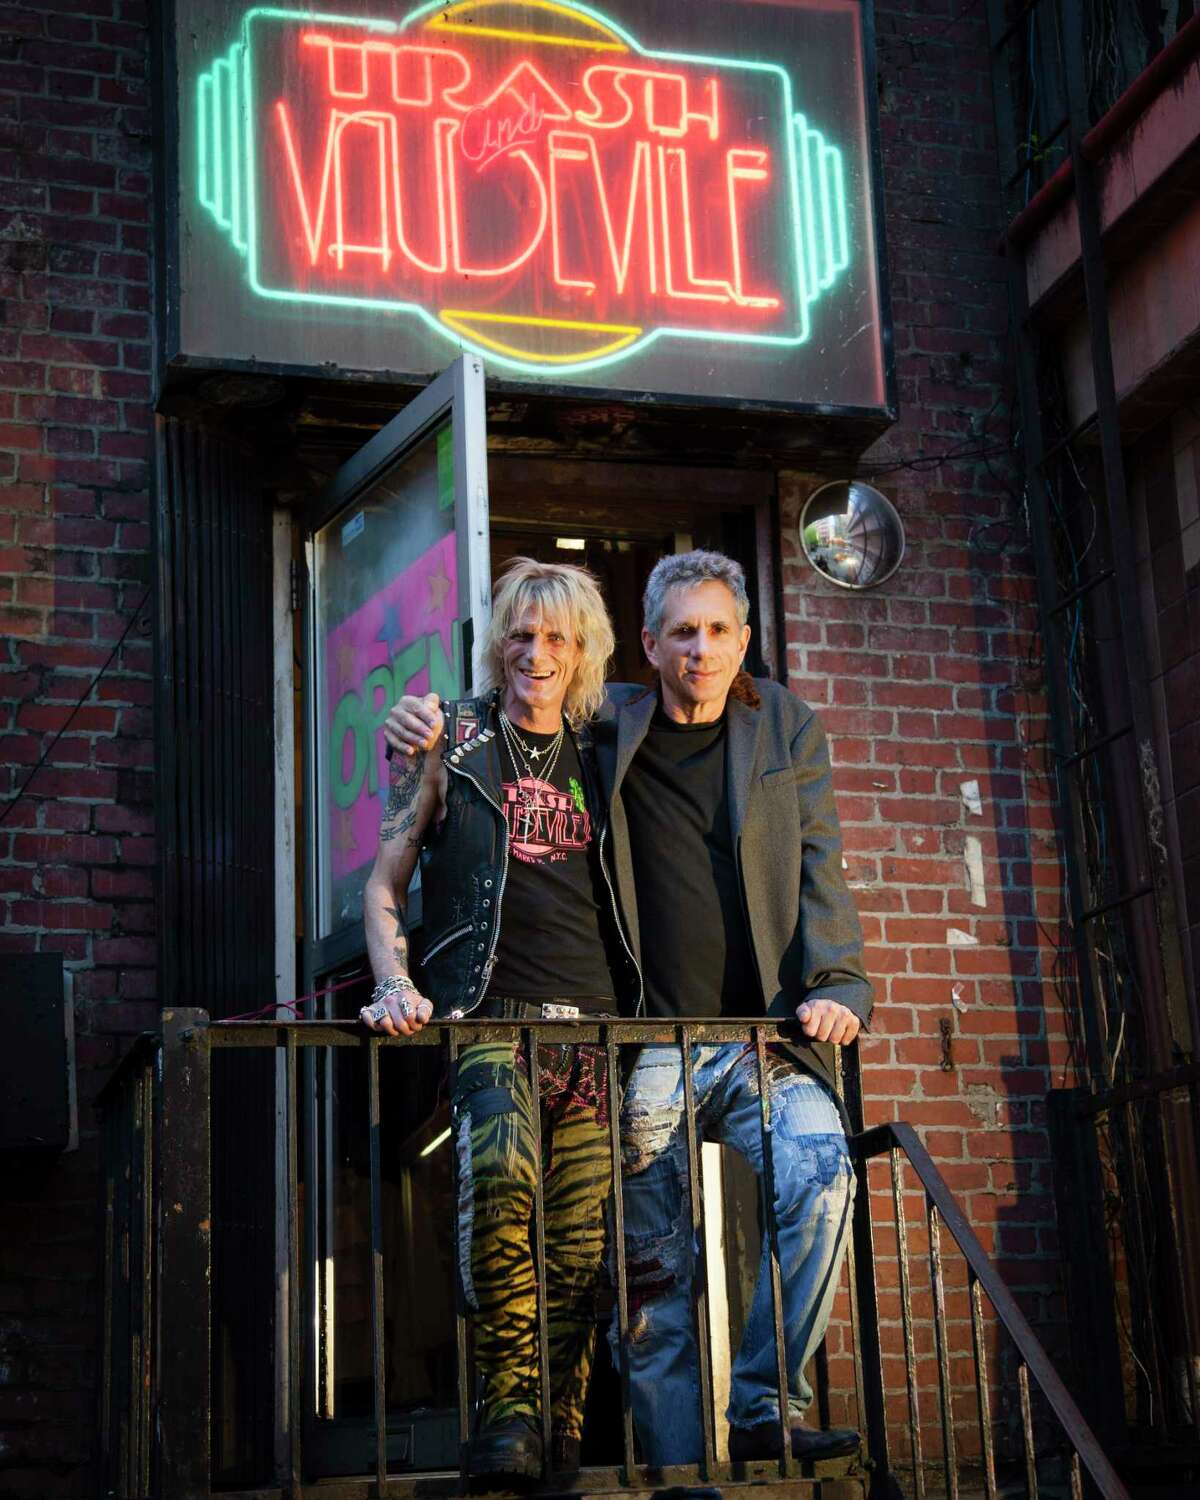 Jimmy Webb, left, the manager and buyer at Trash and Vaudeville, and Ray Goodman, the owner in New York, April 30, 2013. Trash and Vaudeville, around since 1975, remains a fixture in a very different East Village. (Deidre Schoo/The New York Times)